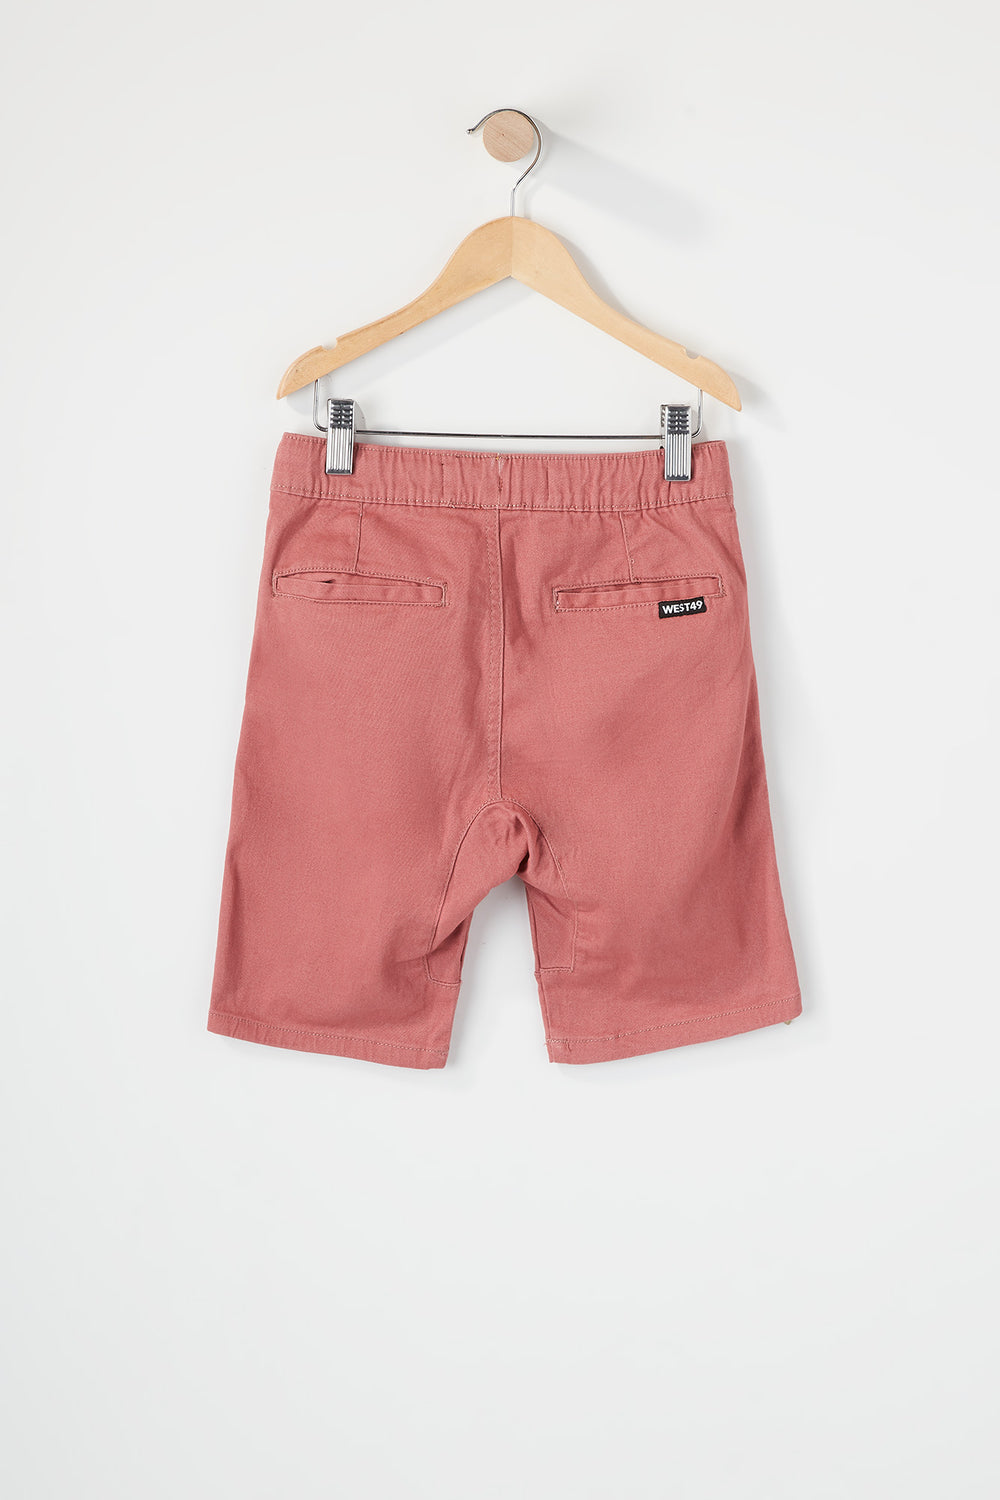 West49 Boys Jogger Short Dark Pink